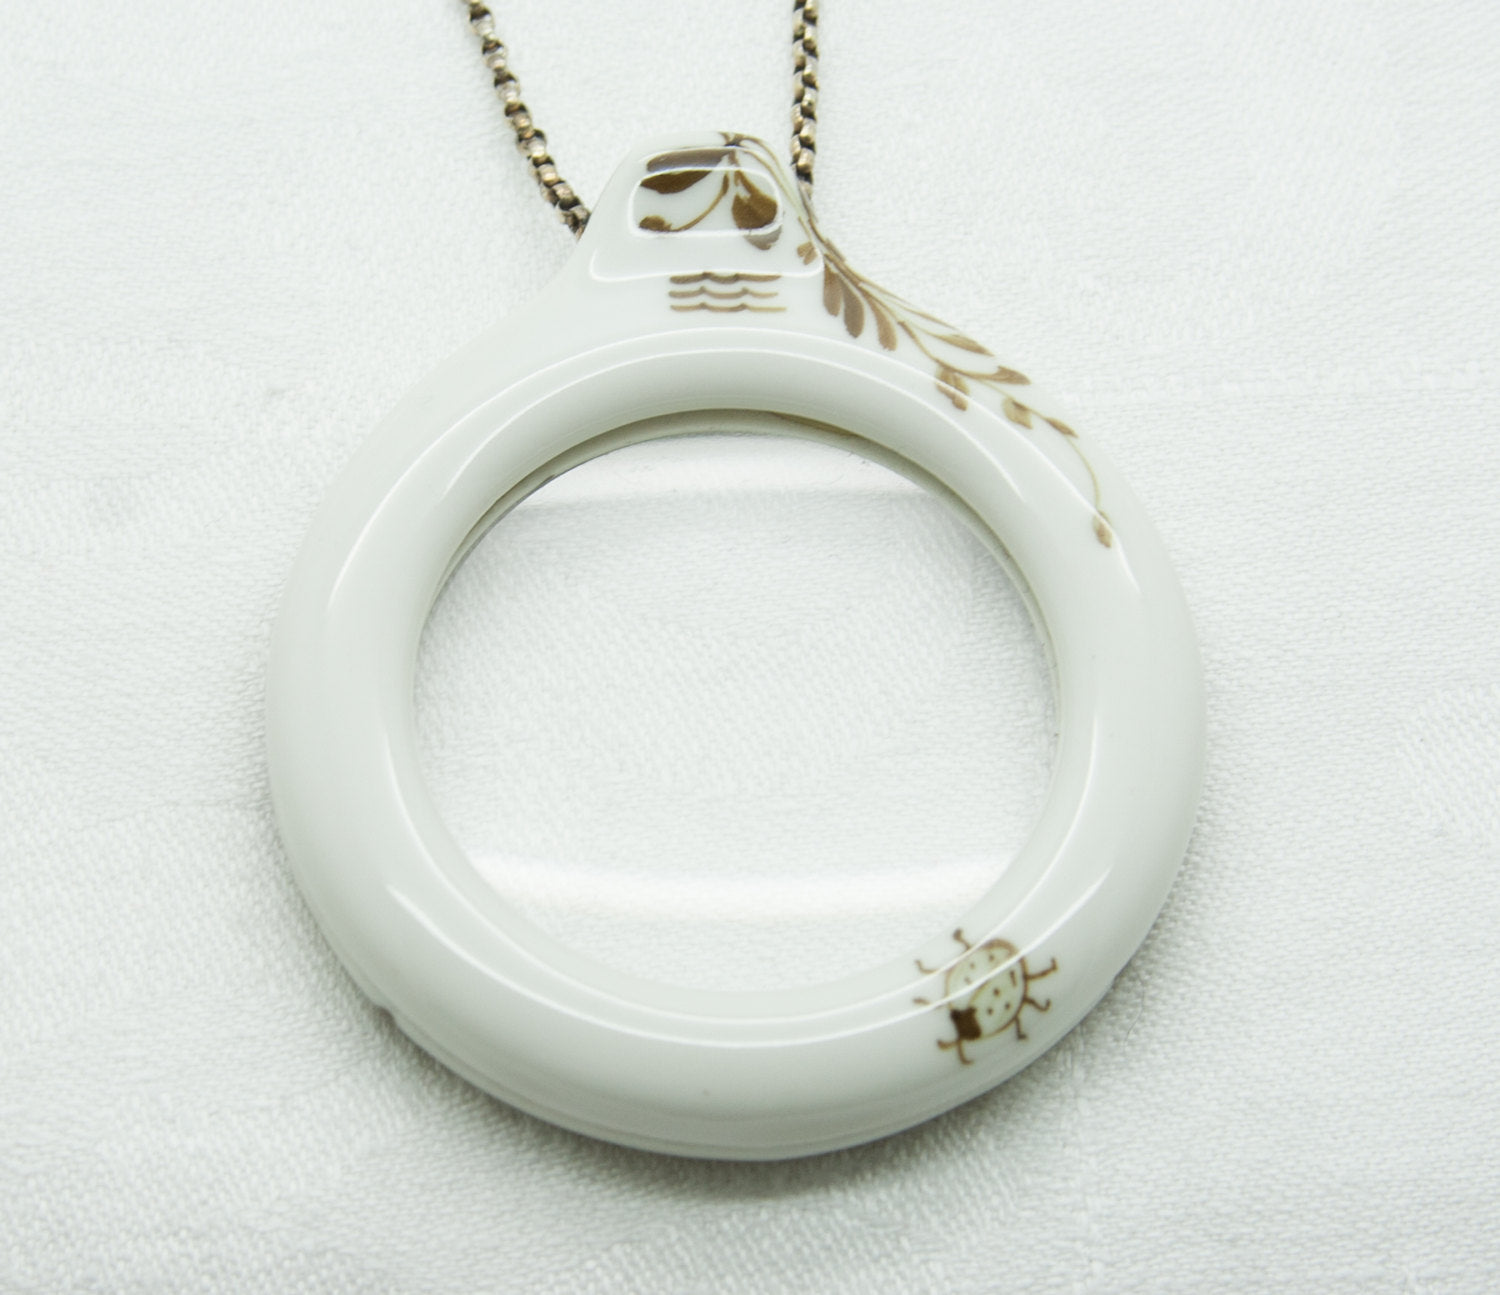 Royal Copenhagen Brown Fluted Loupe Porcelain Sterling Silver Pendant Necklace - Mollaris.com